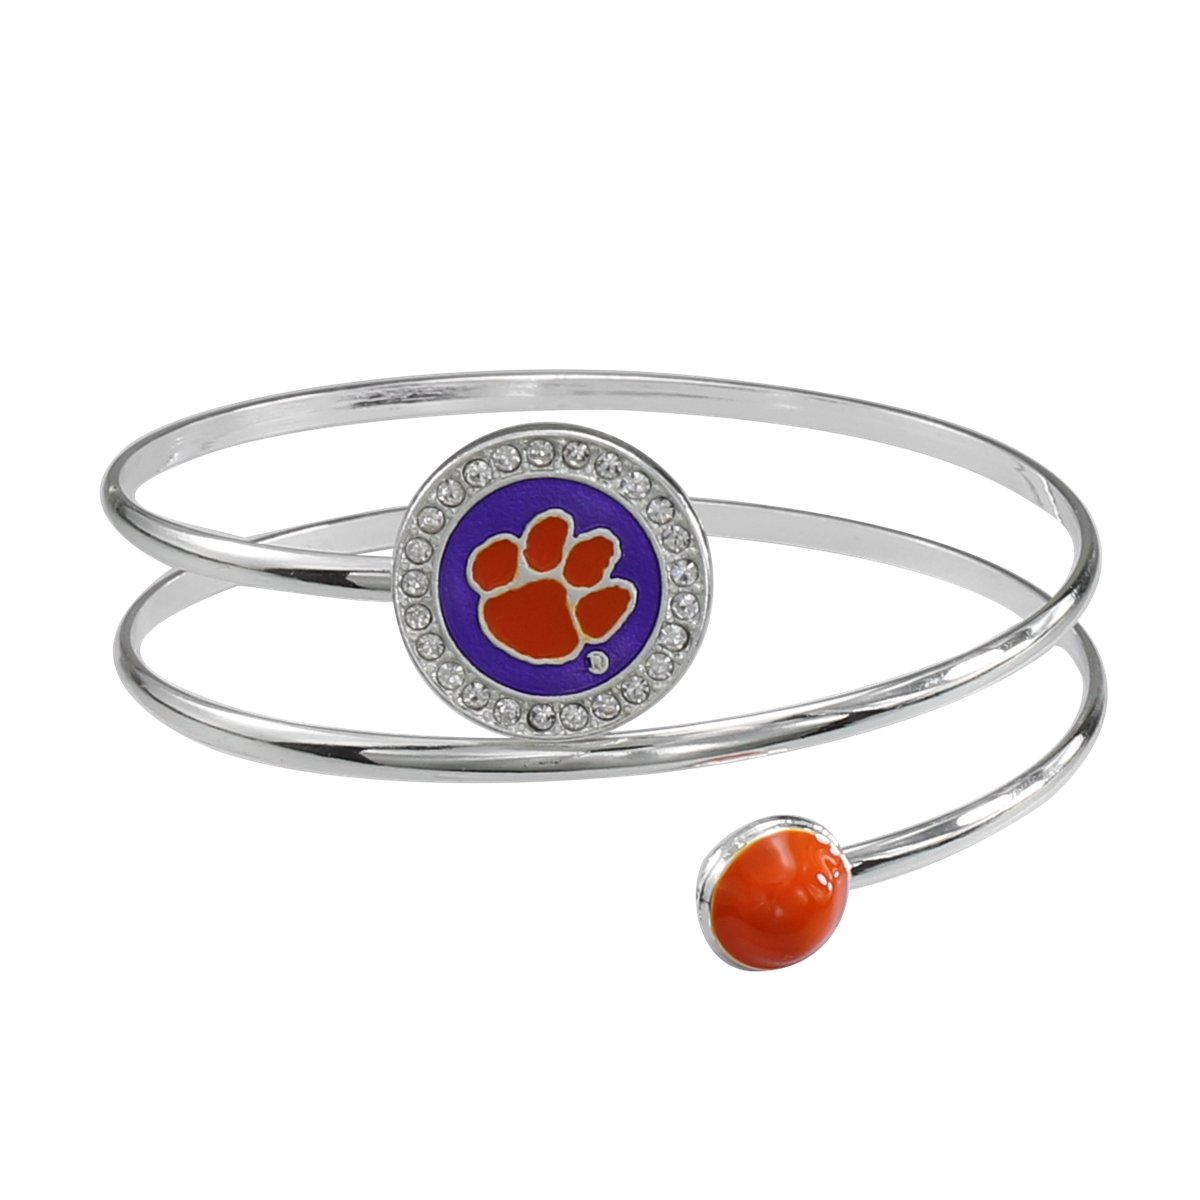 Clemson Metal Coil Bracelet - Mr. Knickerbocker